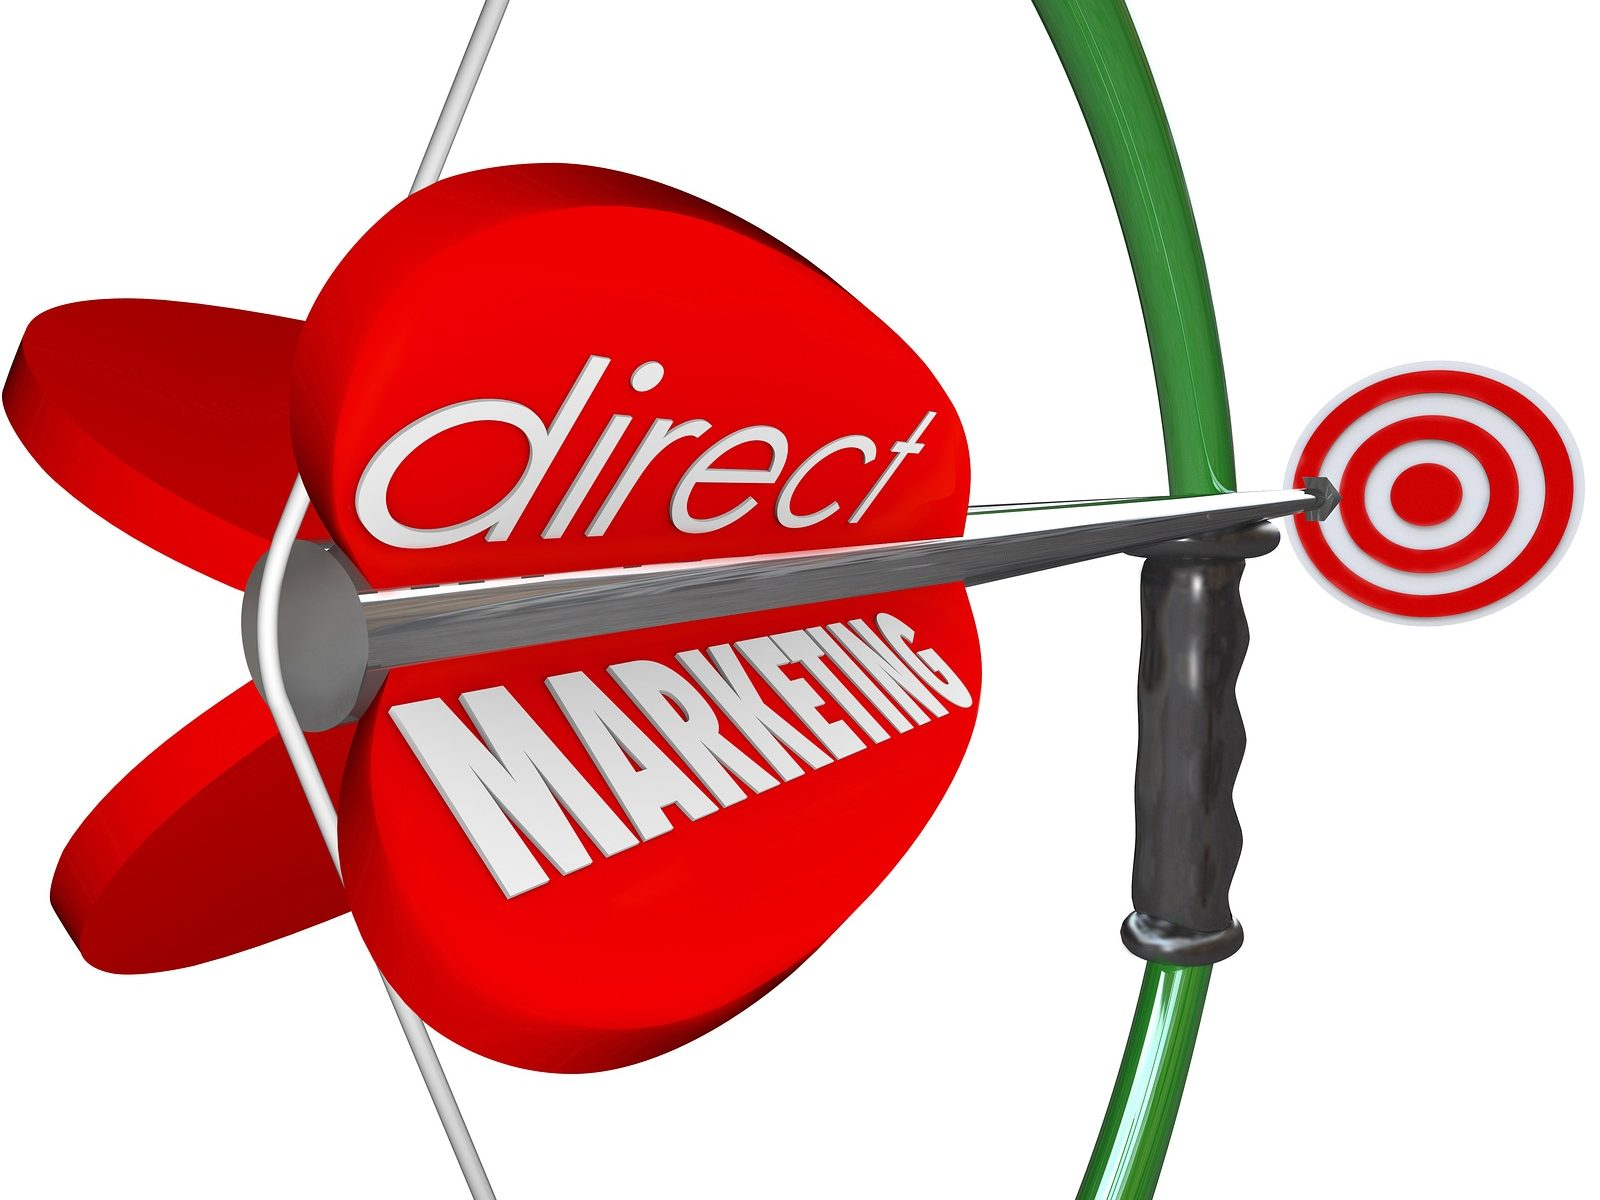 How to Do Direct Mail Part 3: The Letter